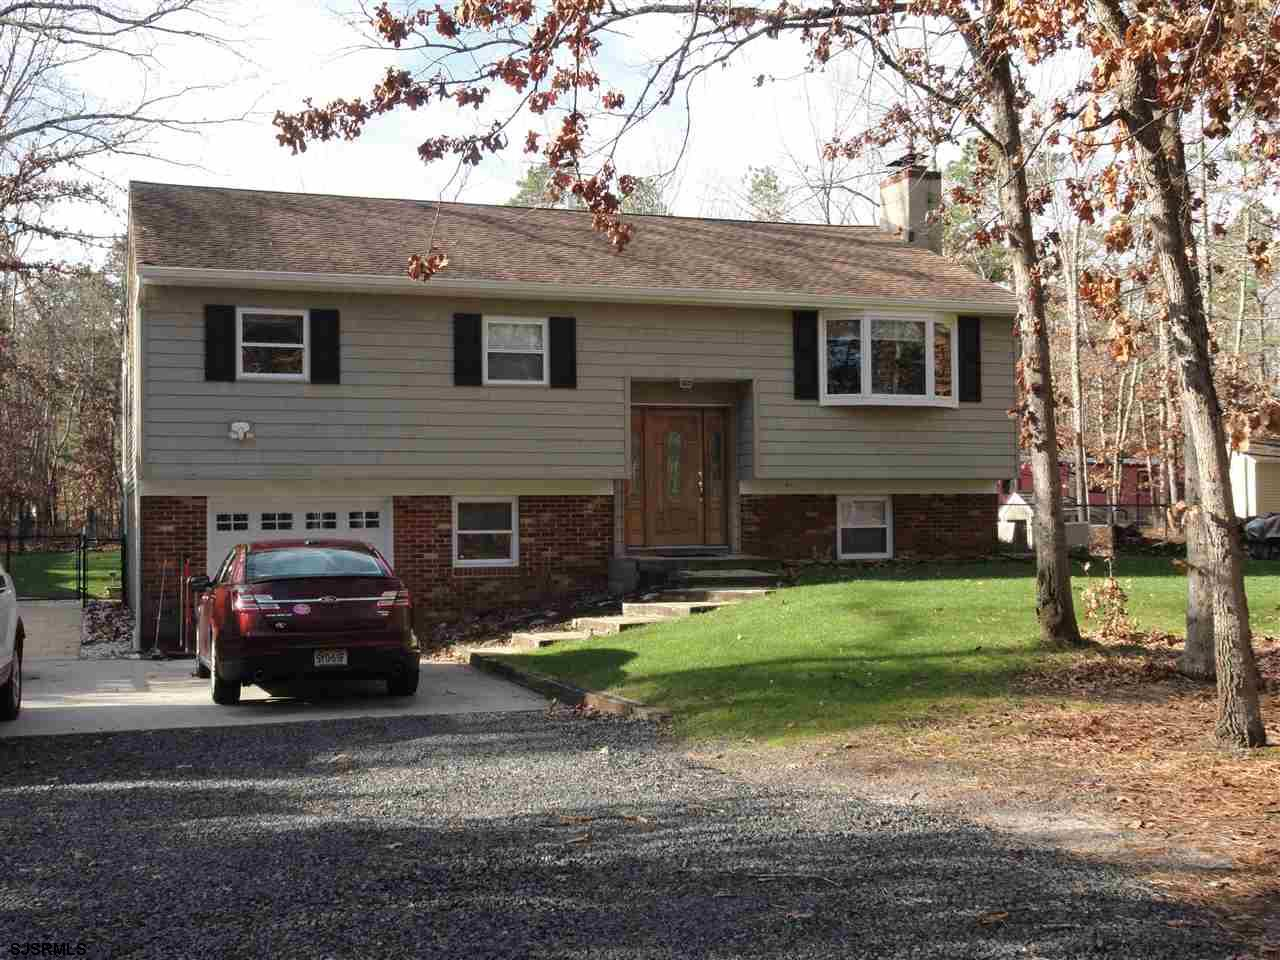 This well maintained Sweetwater home is situated on one peaceful wooded acre and features a private